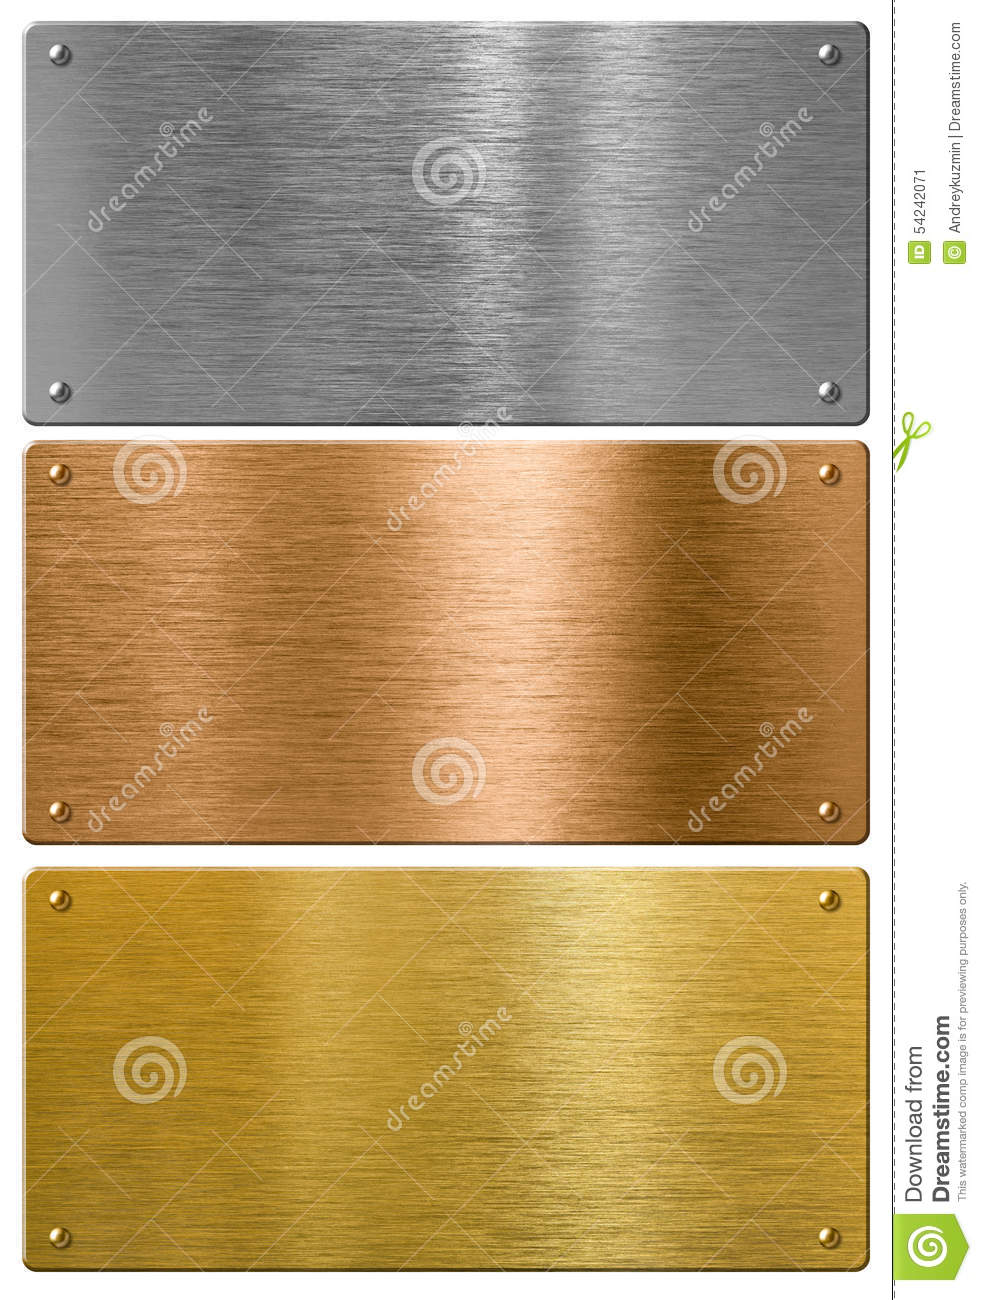 Silver, gold and bronze metal high quality plates